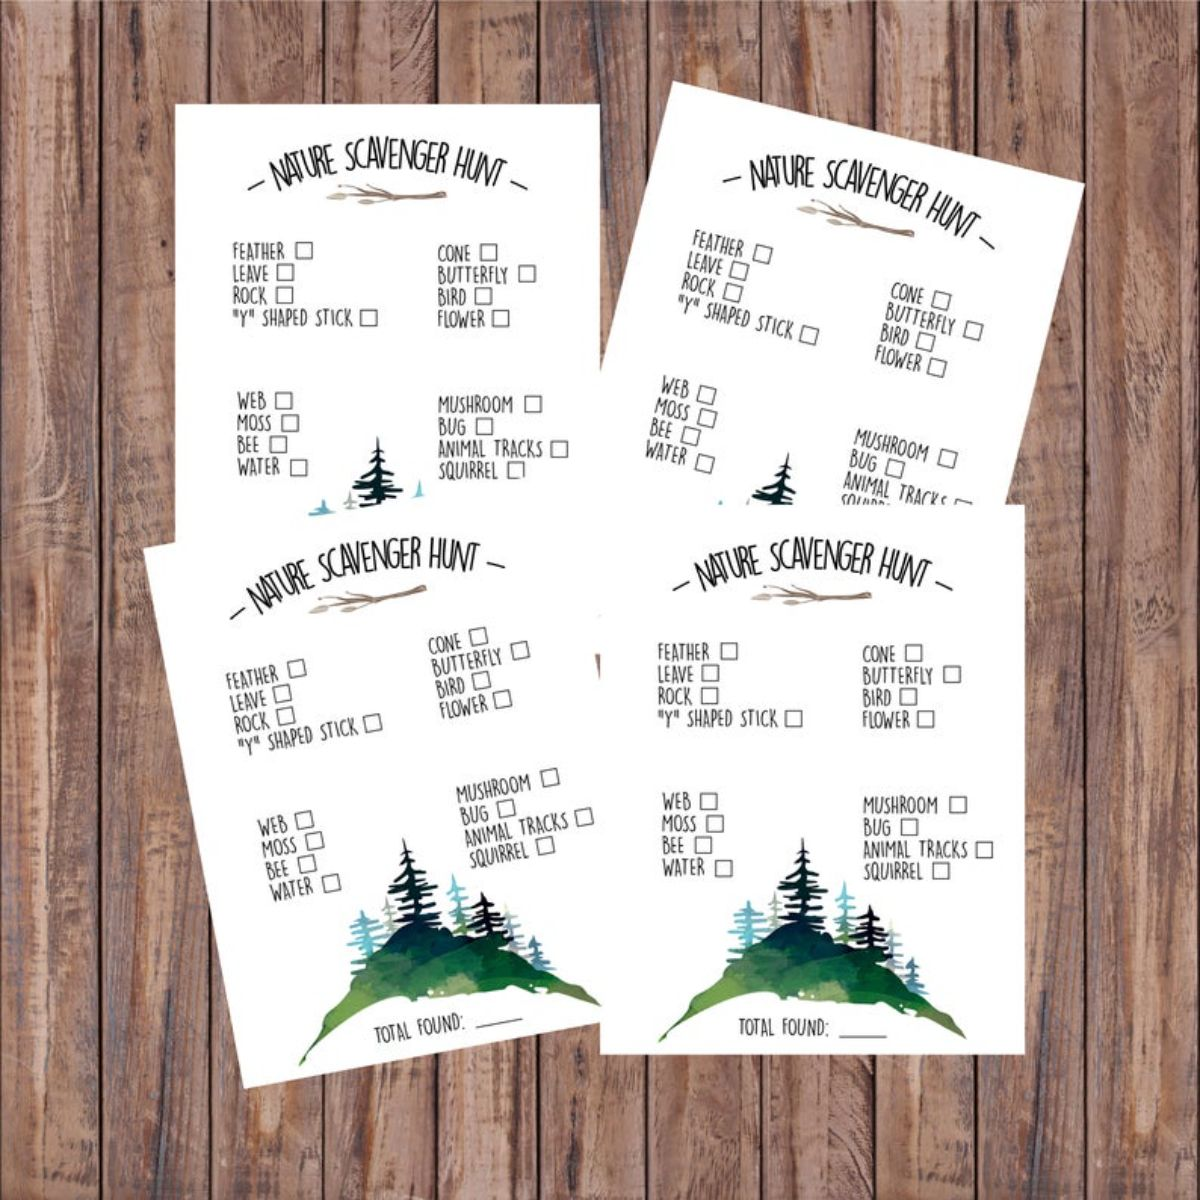 4 scavenger hunt sheets are on a wooden background